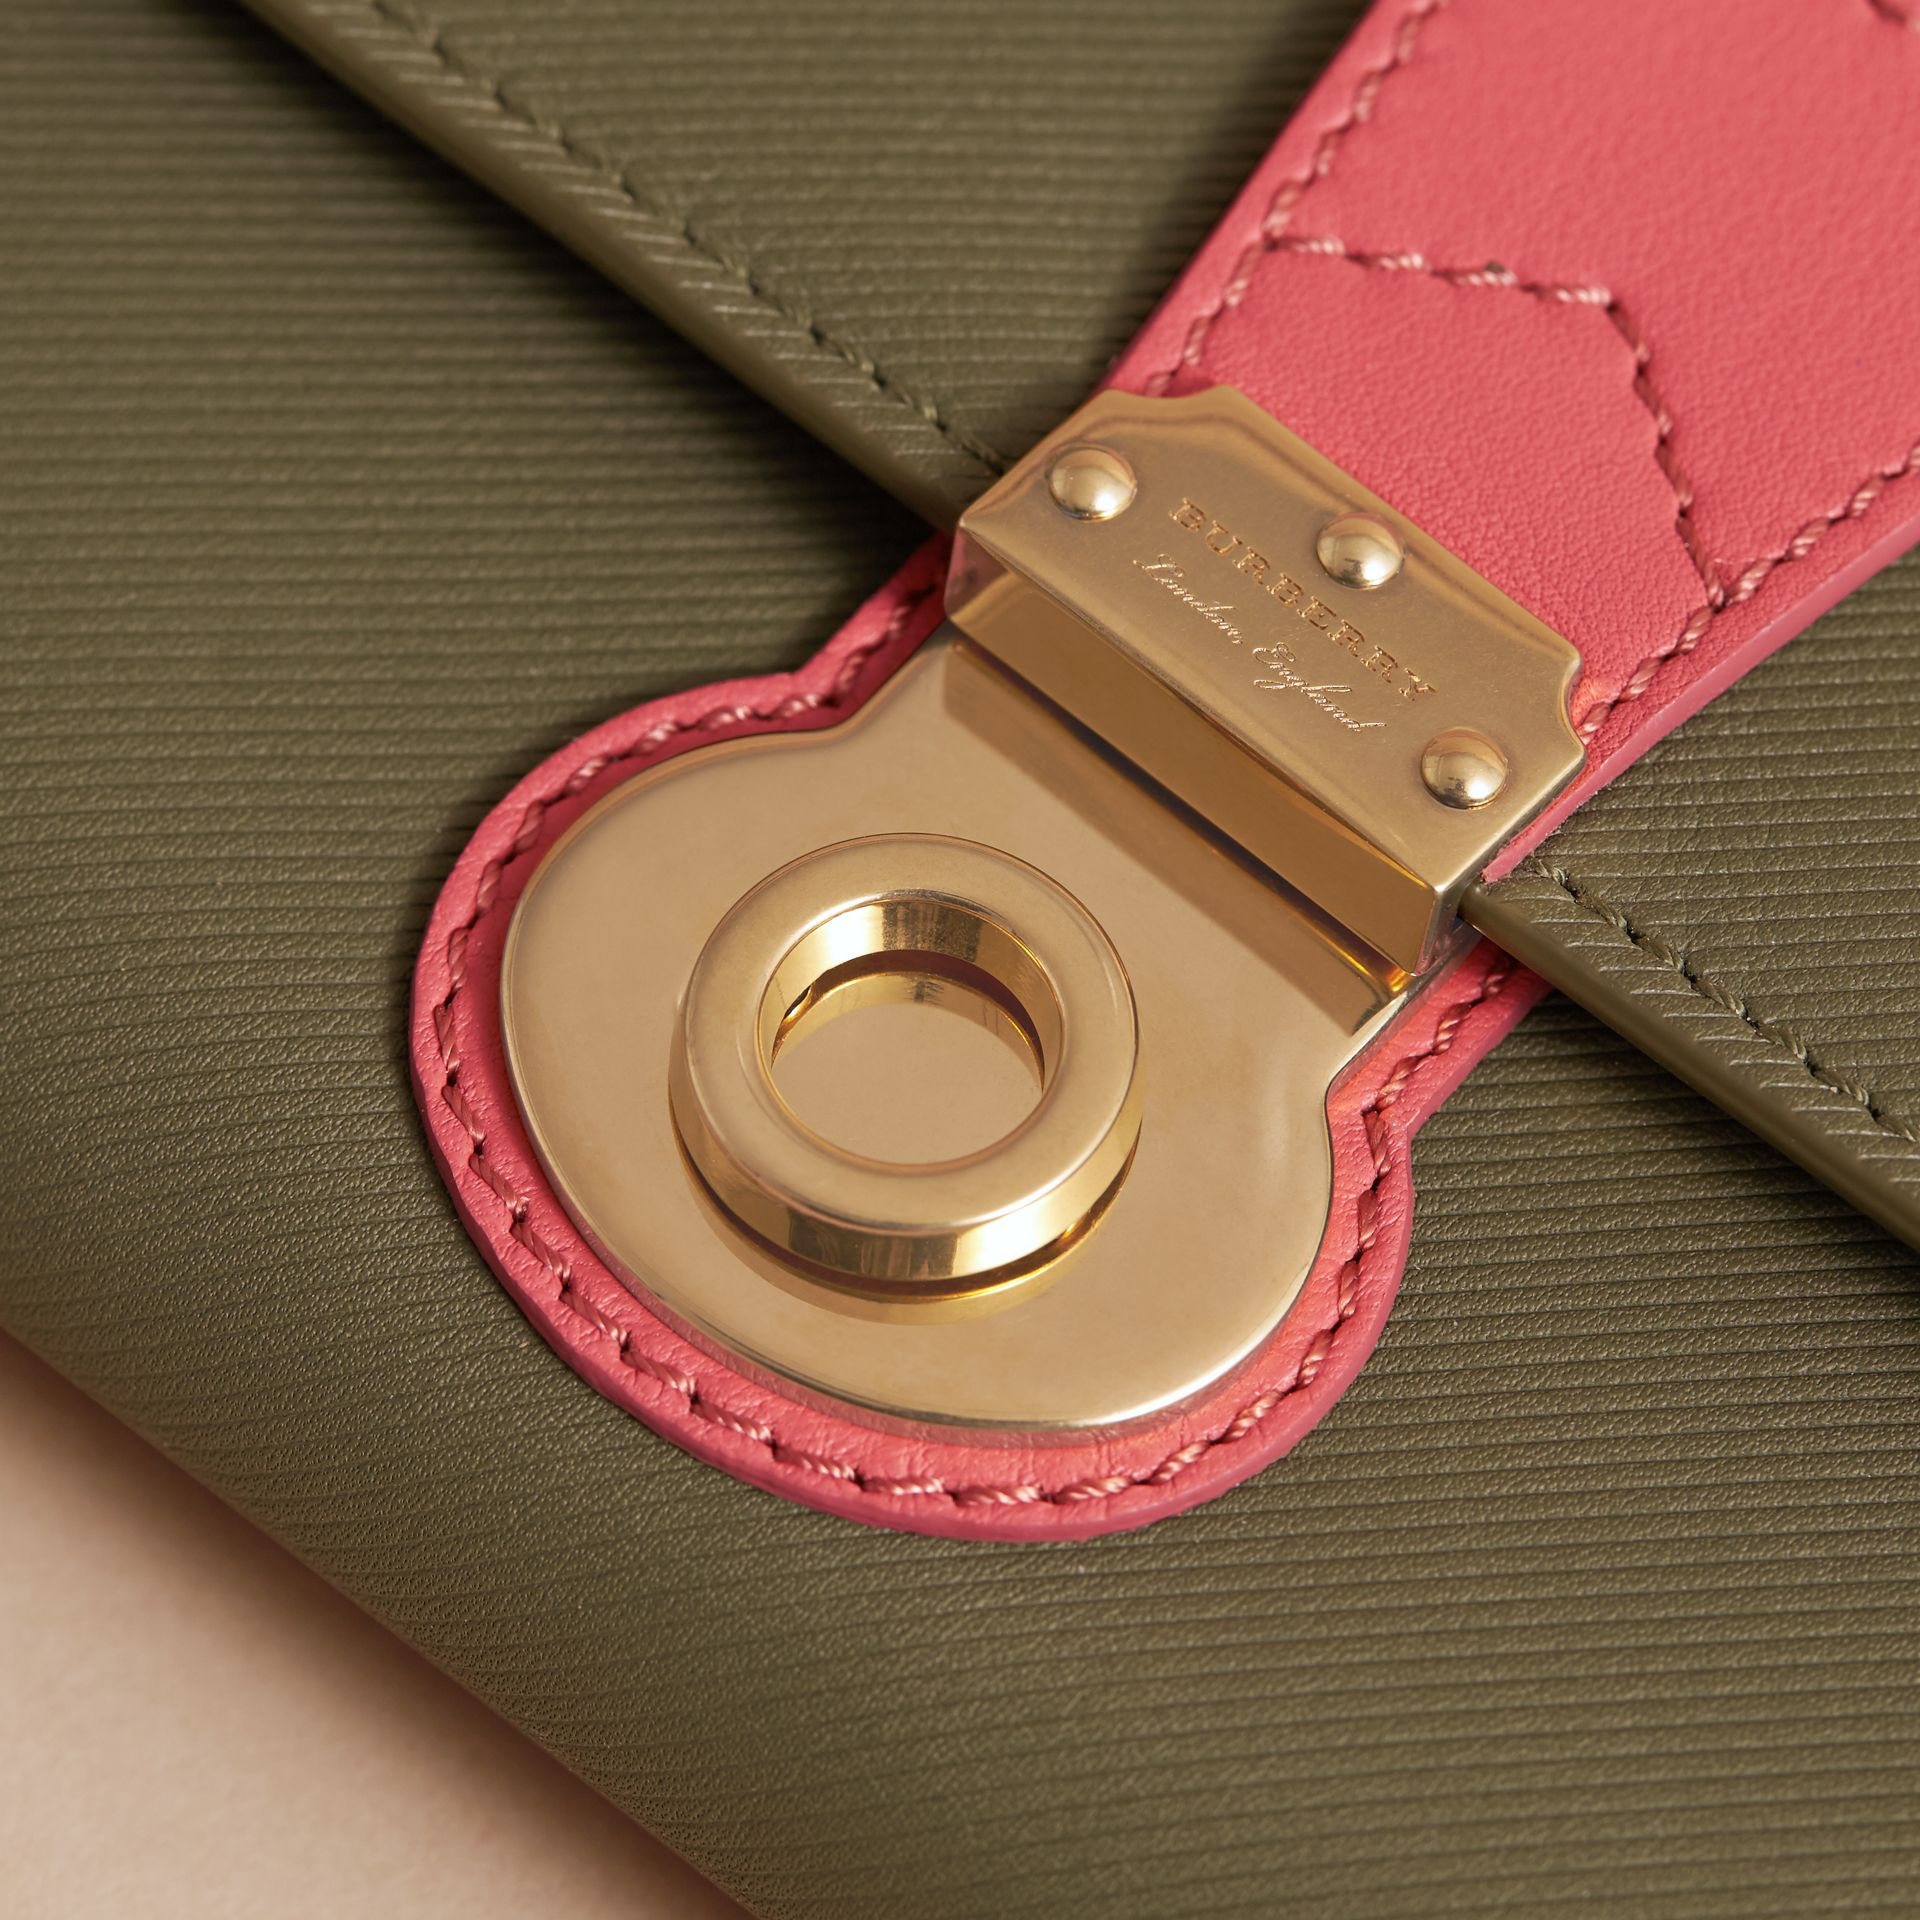 Two-tone Trench Leather Continental Wallet in Moss Green/ Blossom Pink - Women | Burberry Australia - gallery image 2